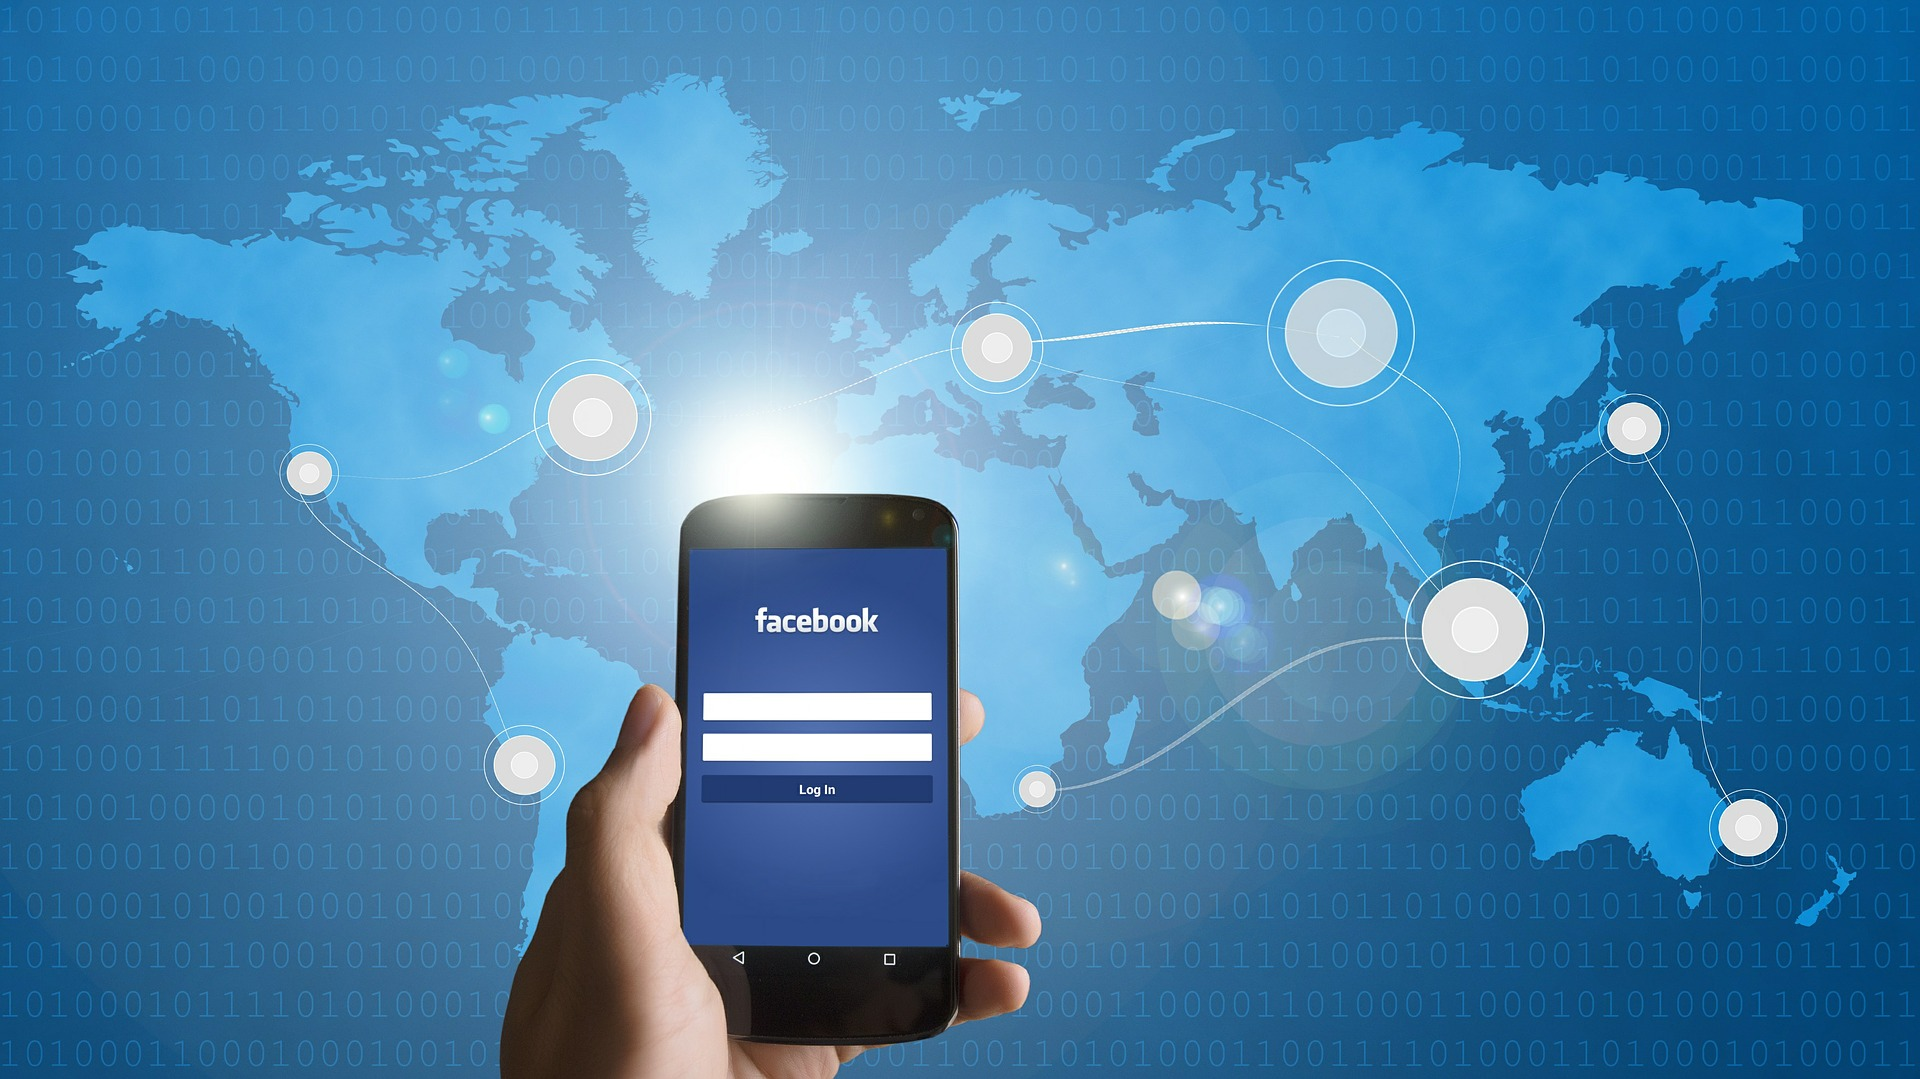 A mobile phone showcasing Facebook for the Facebook advertising agency in India for the website banner.